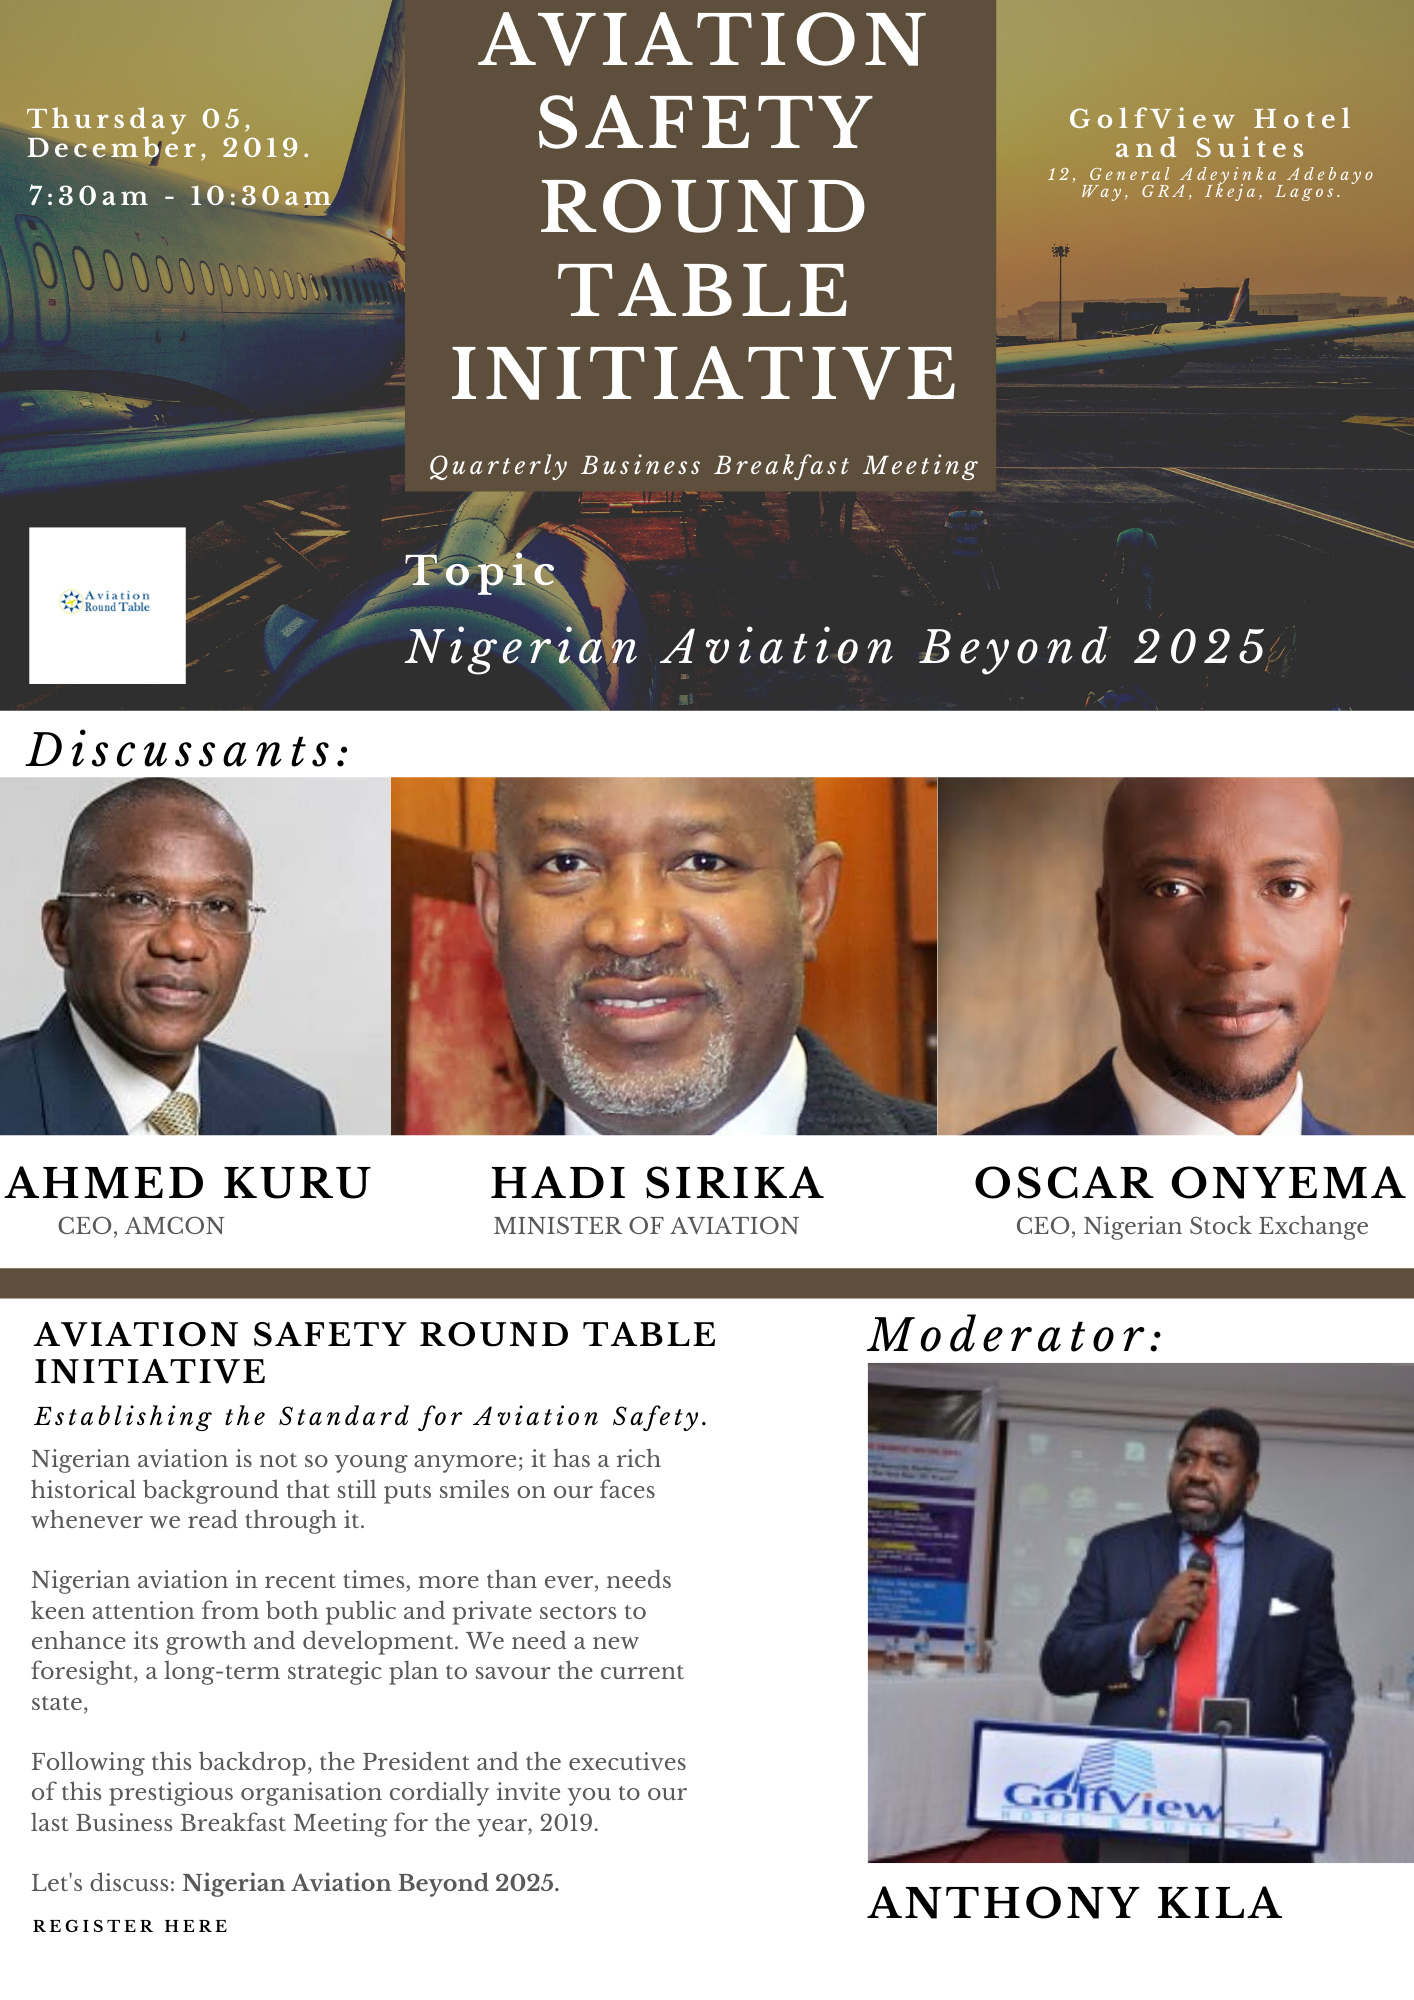 Business Breakfast Meeting (Dec. 2019): Meet Our Discussants